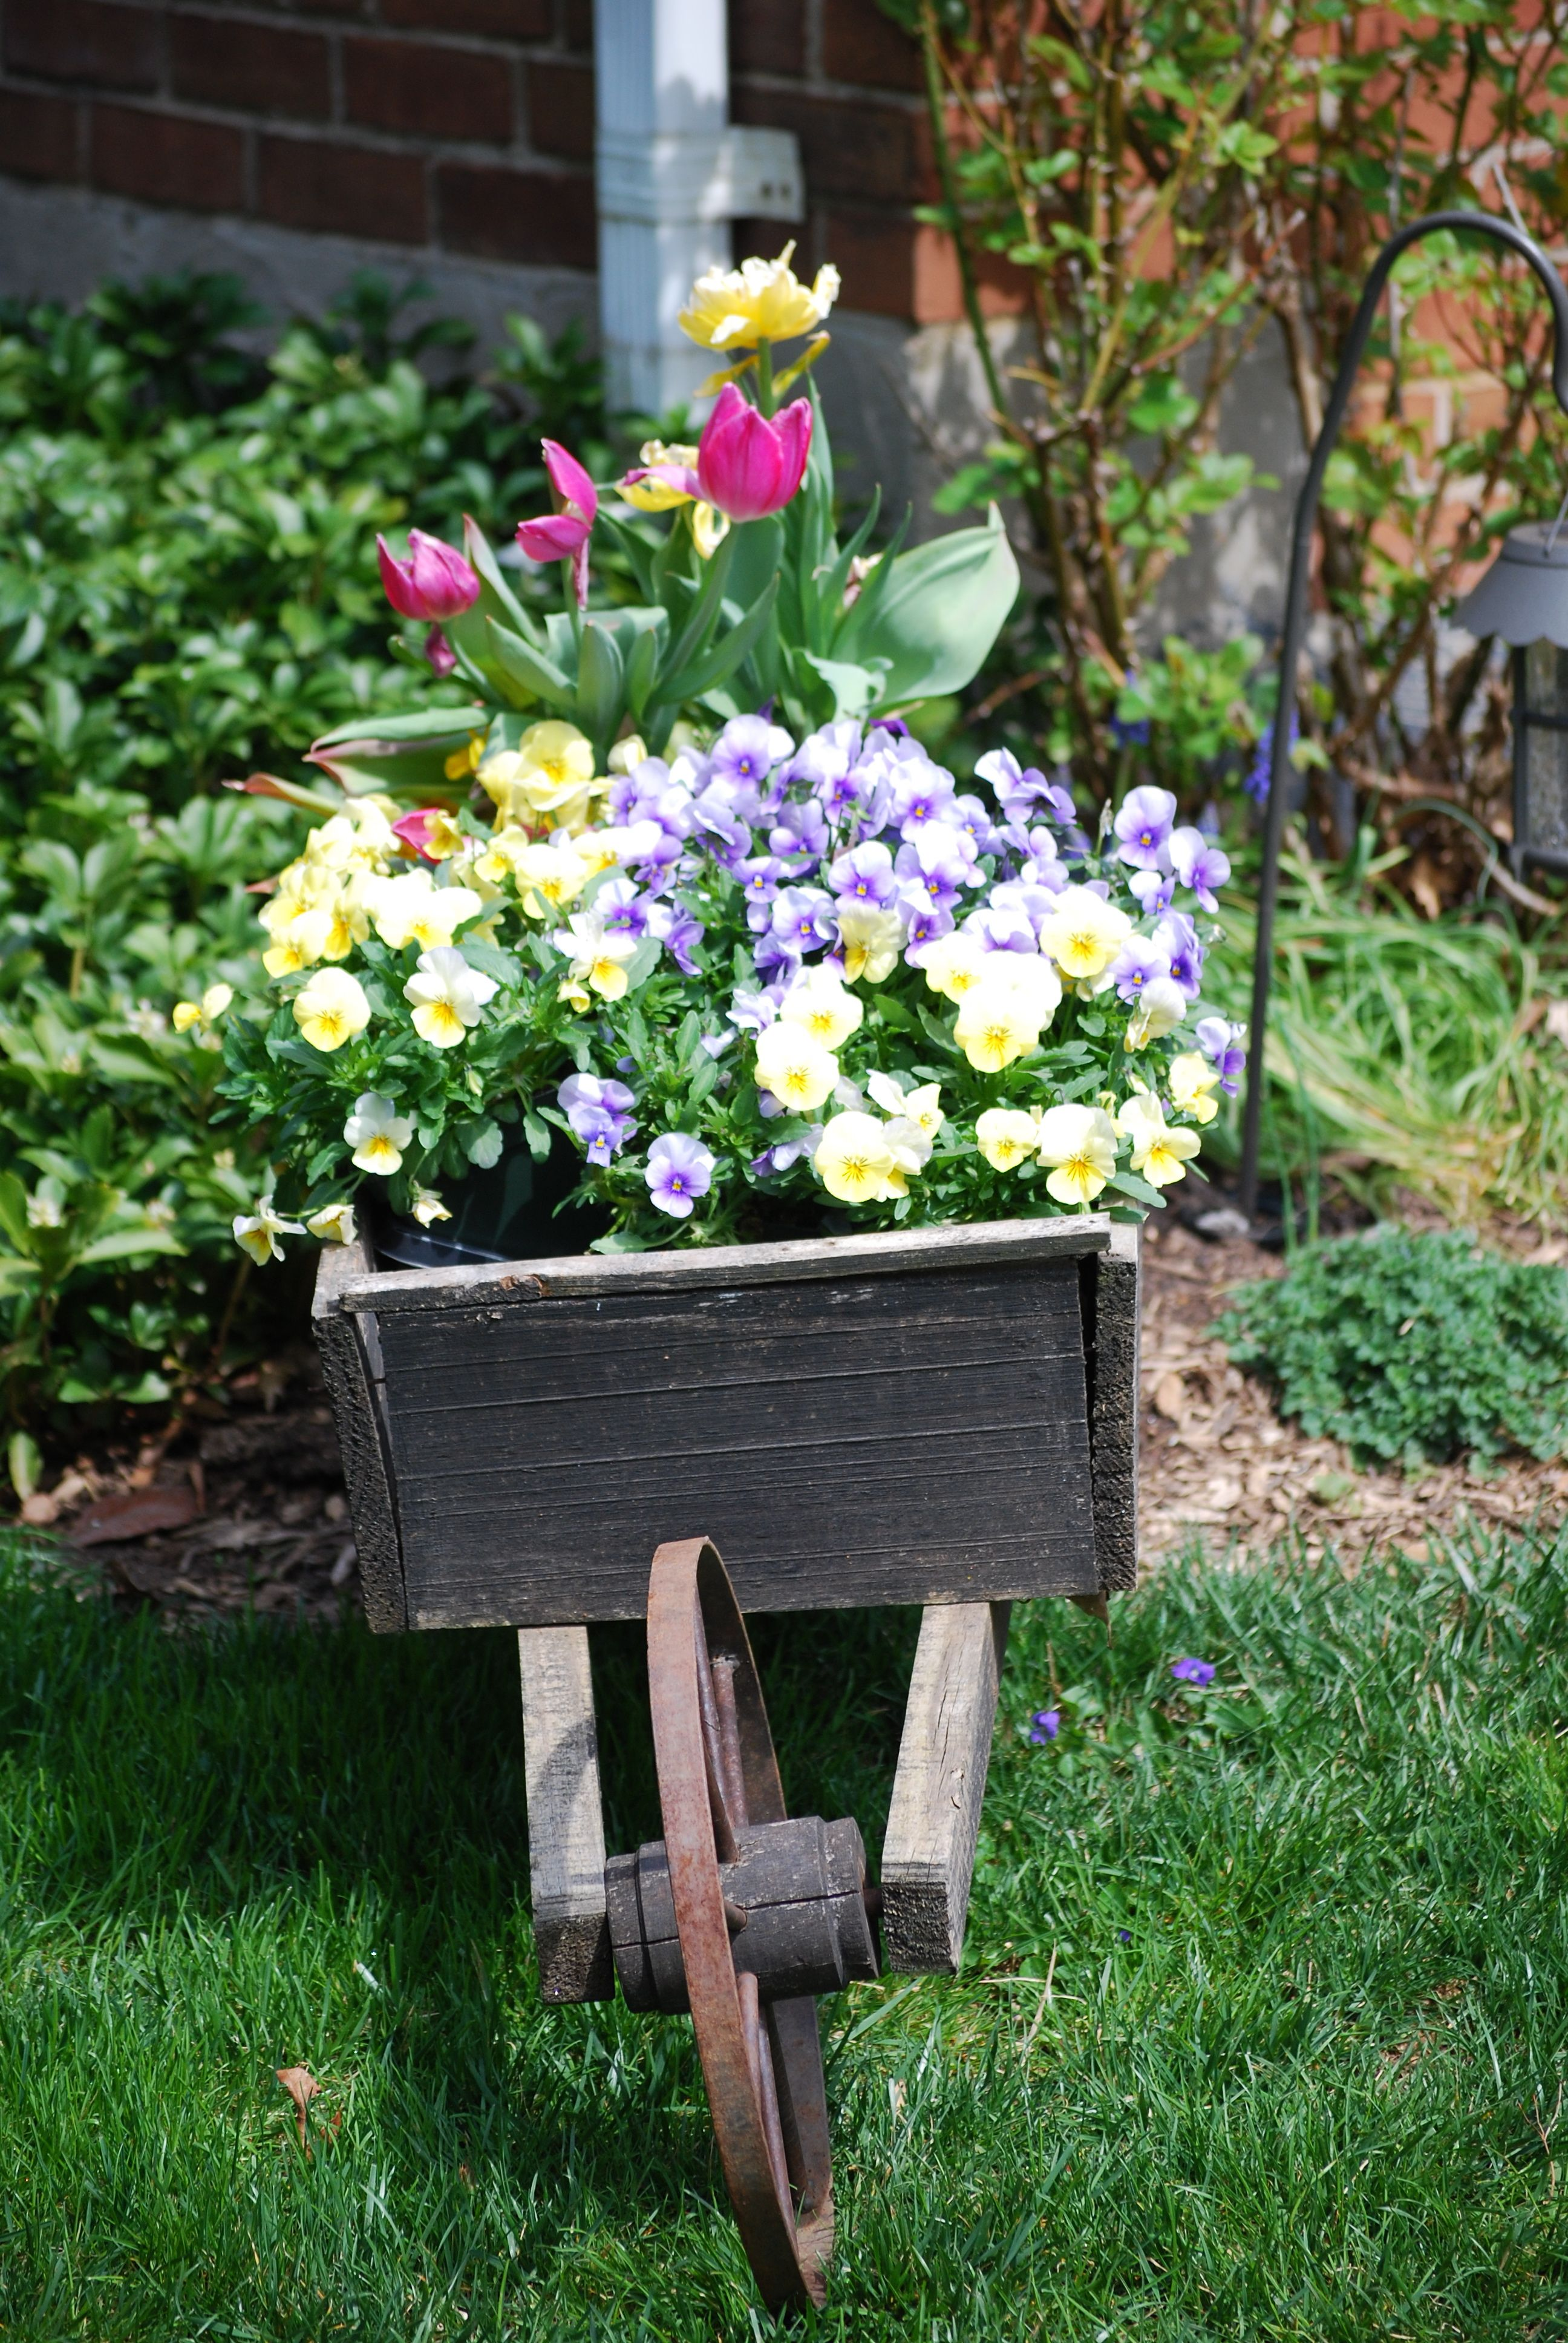 Wagon Planter Love The Pansies